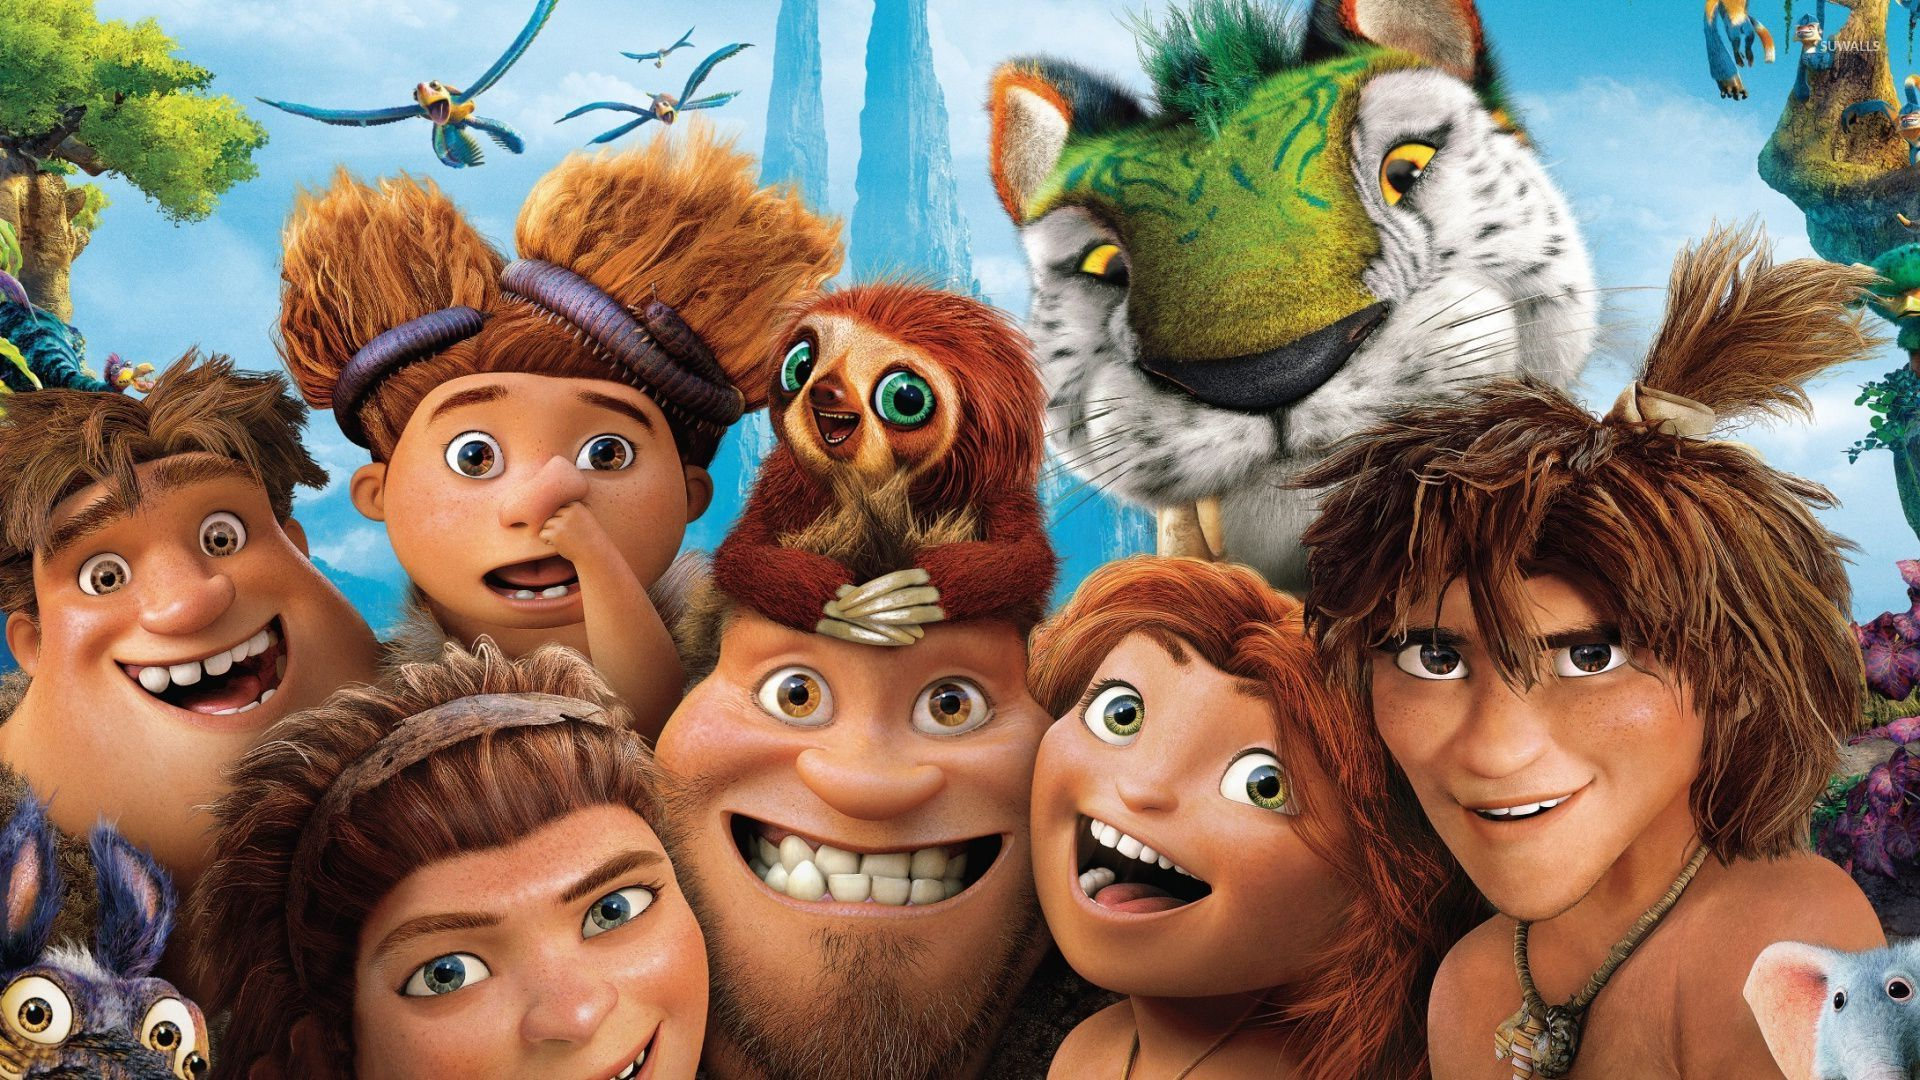 The croods 4 wallpaper cartoon wallpapers 32722 the croods 4 wallpaper voltagebd Gallery